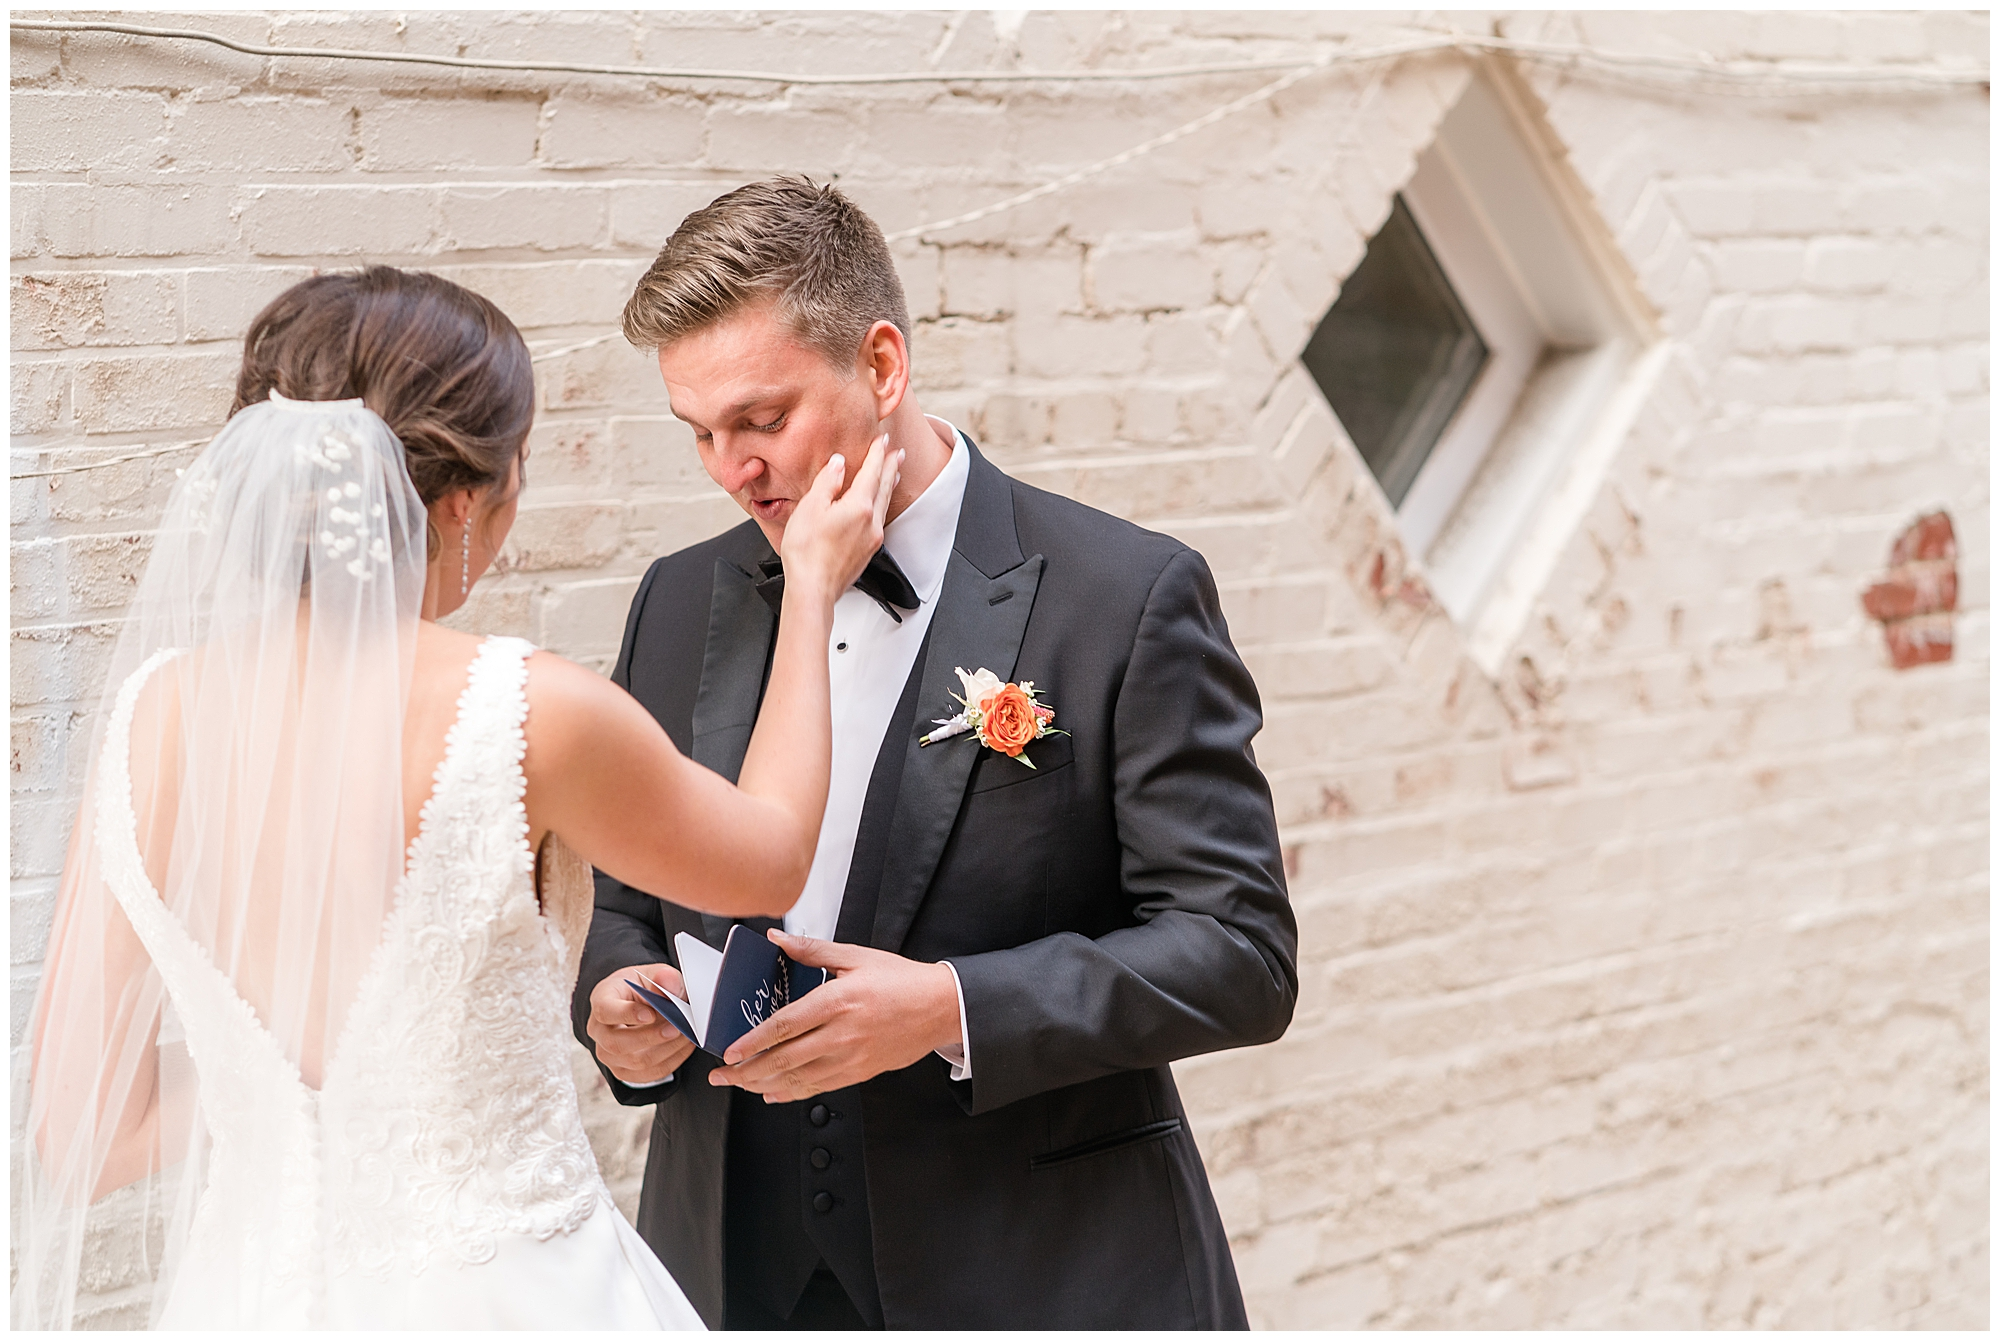 A bride touches her groom's cheek as he reads his vows during their Washington DC wedding.